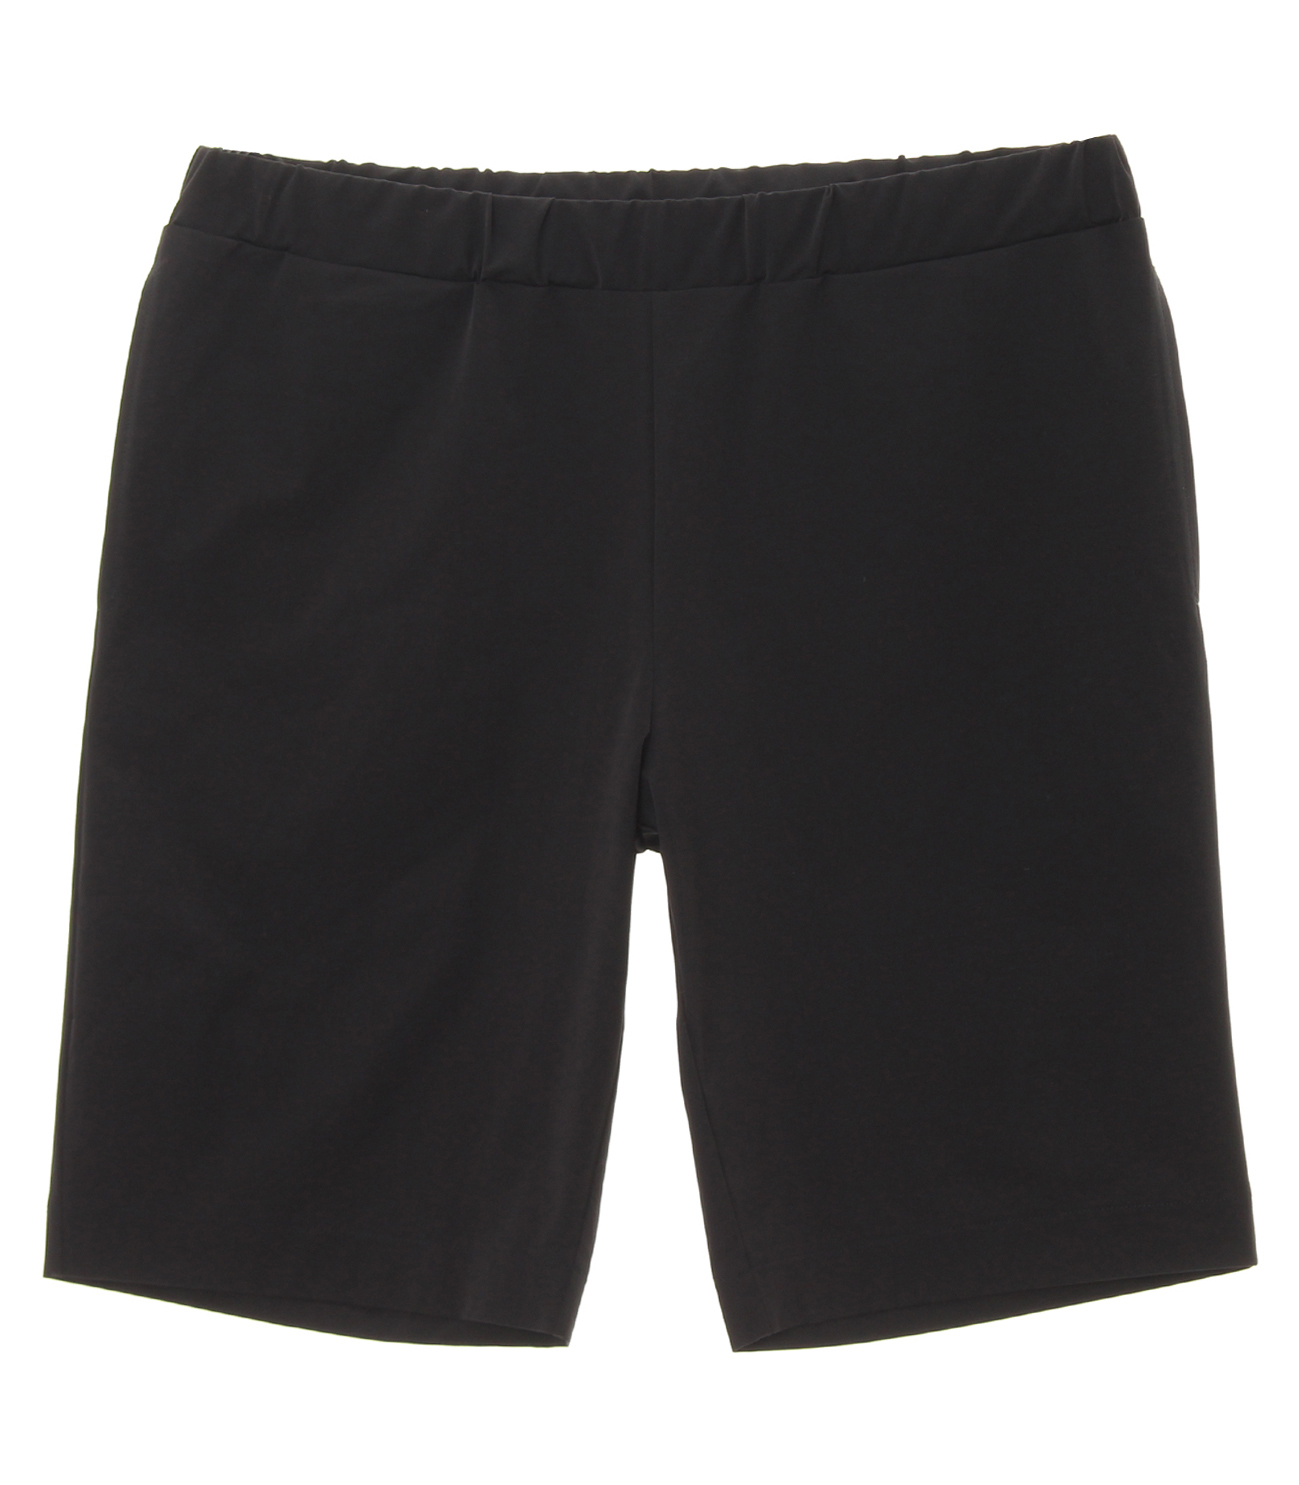 Men's travel line sharlingshorts 詳細画像 black 1